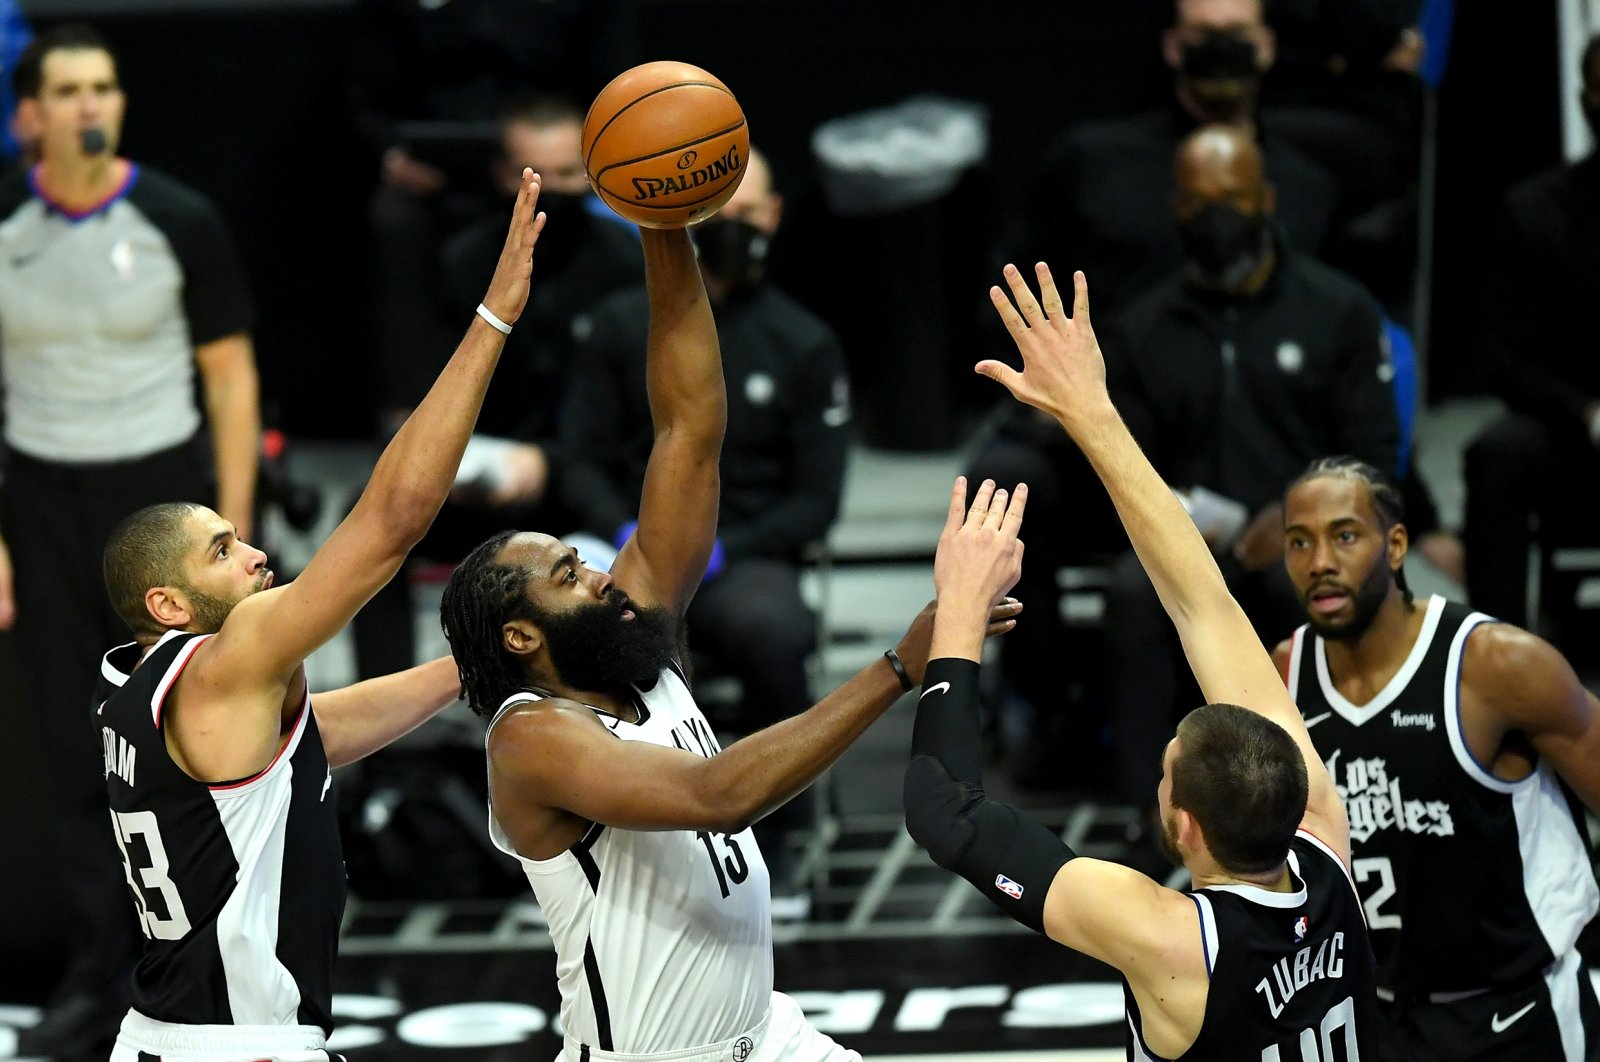 Brooklyn Nets guard James Harden (C) shoots as Los Angeles Clippers forward Nicolas Batum (L) and center Ivica Zubac (R) tries to block in an NBA game at Staples Center,Los Angeles, California,Feb 21, 2021. (Reuters Photo)